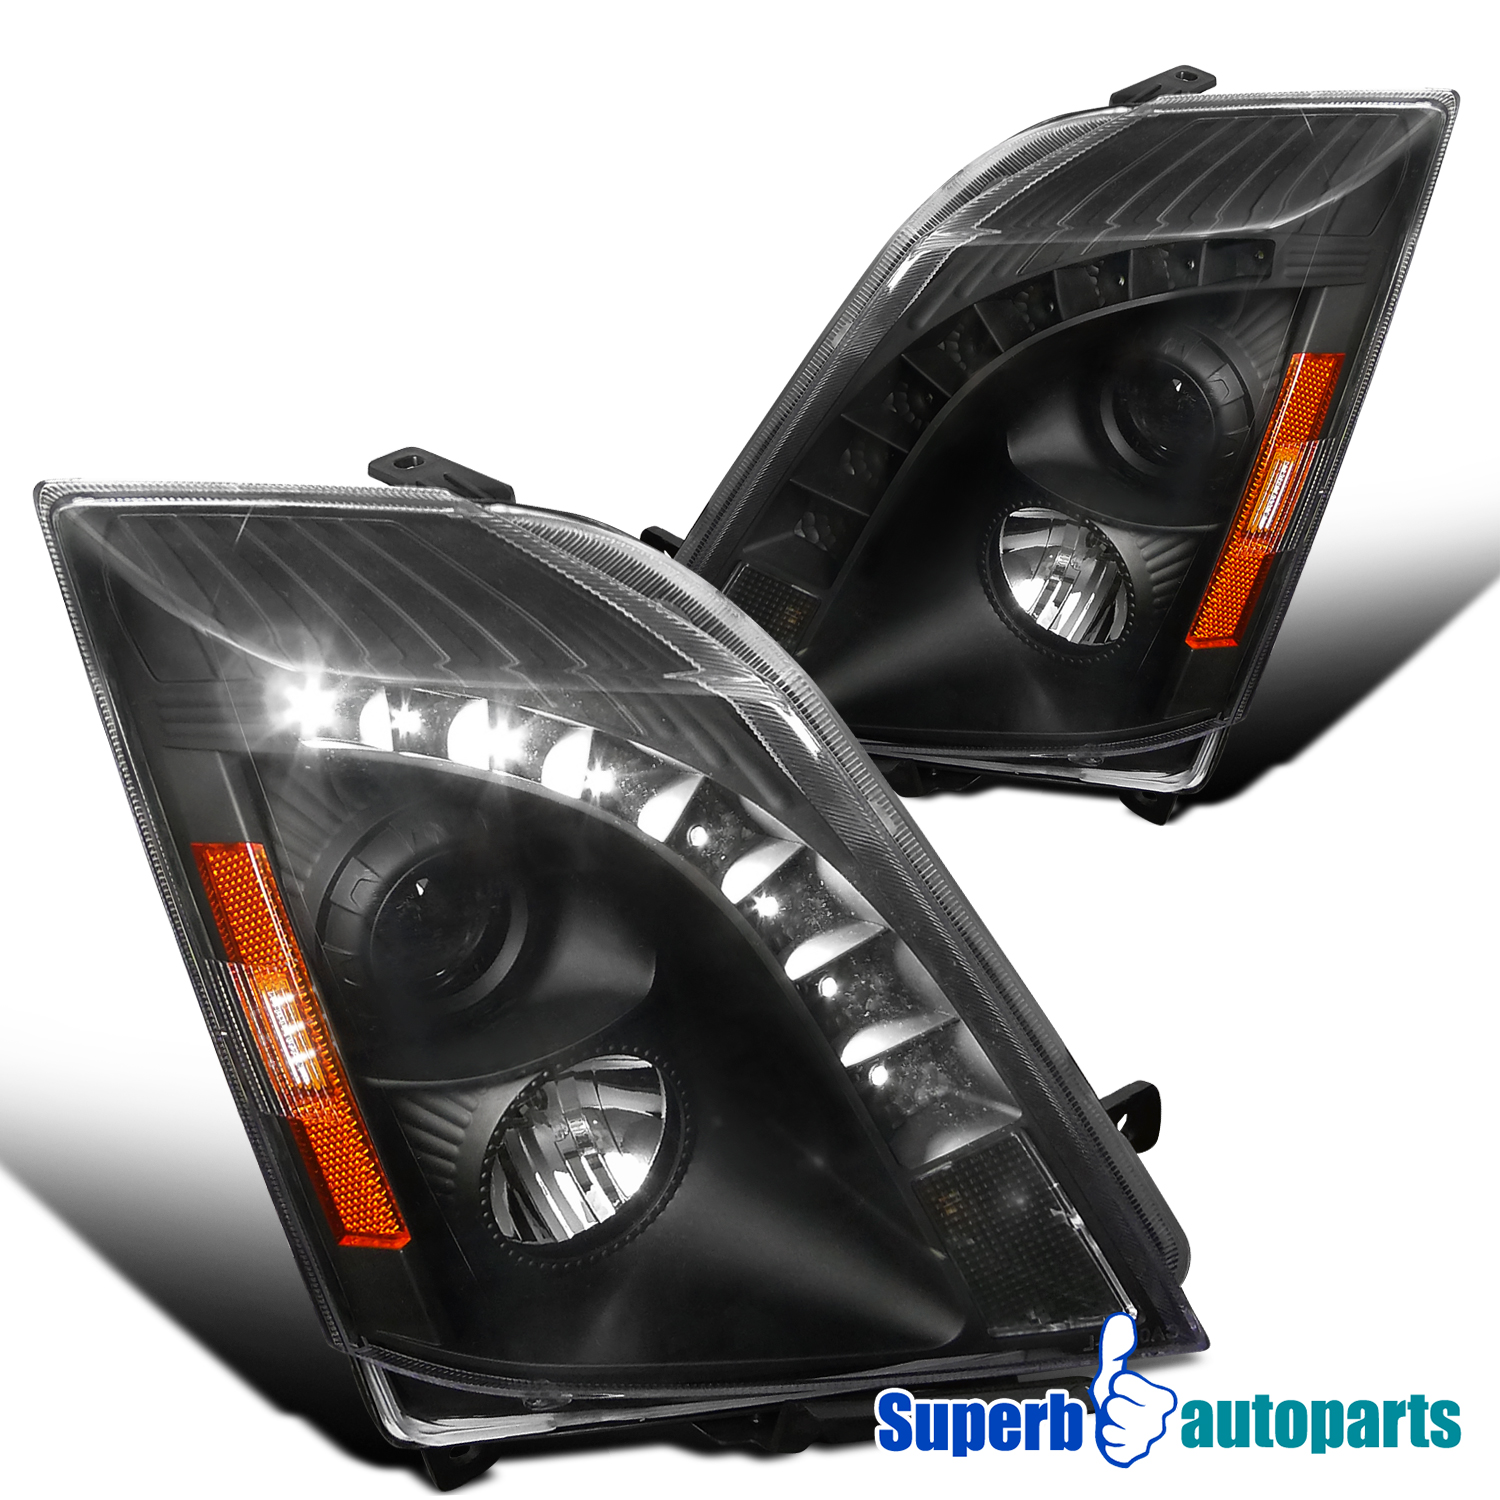 2008 2014 Cadillac Cts SMD LED DRL Projector Headlights